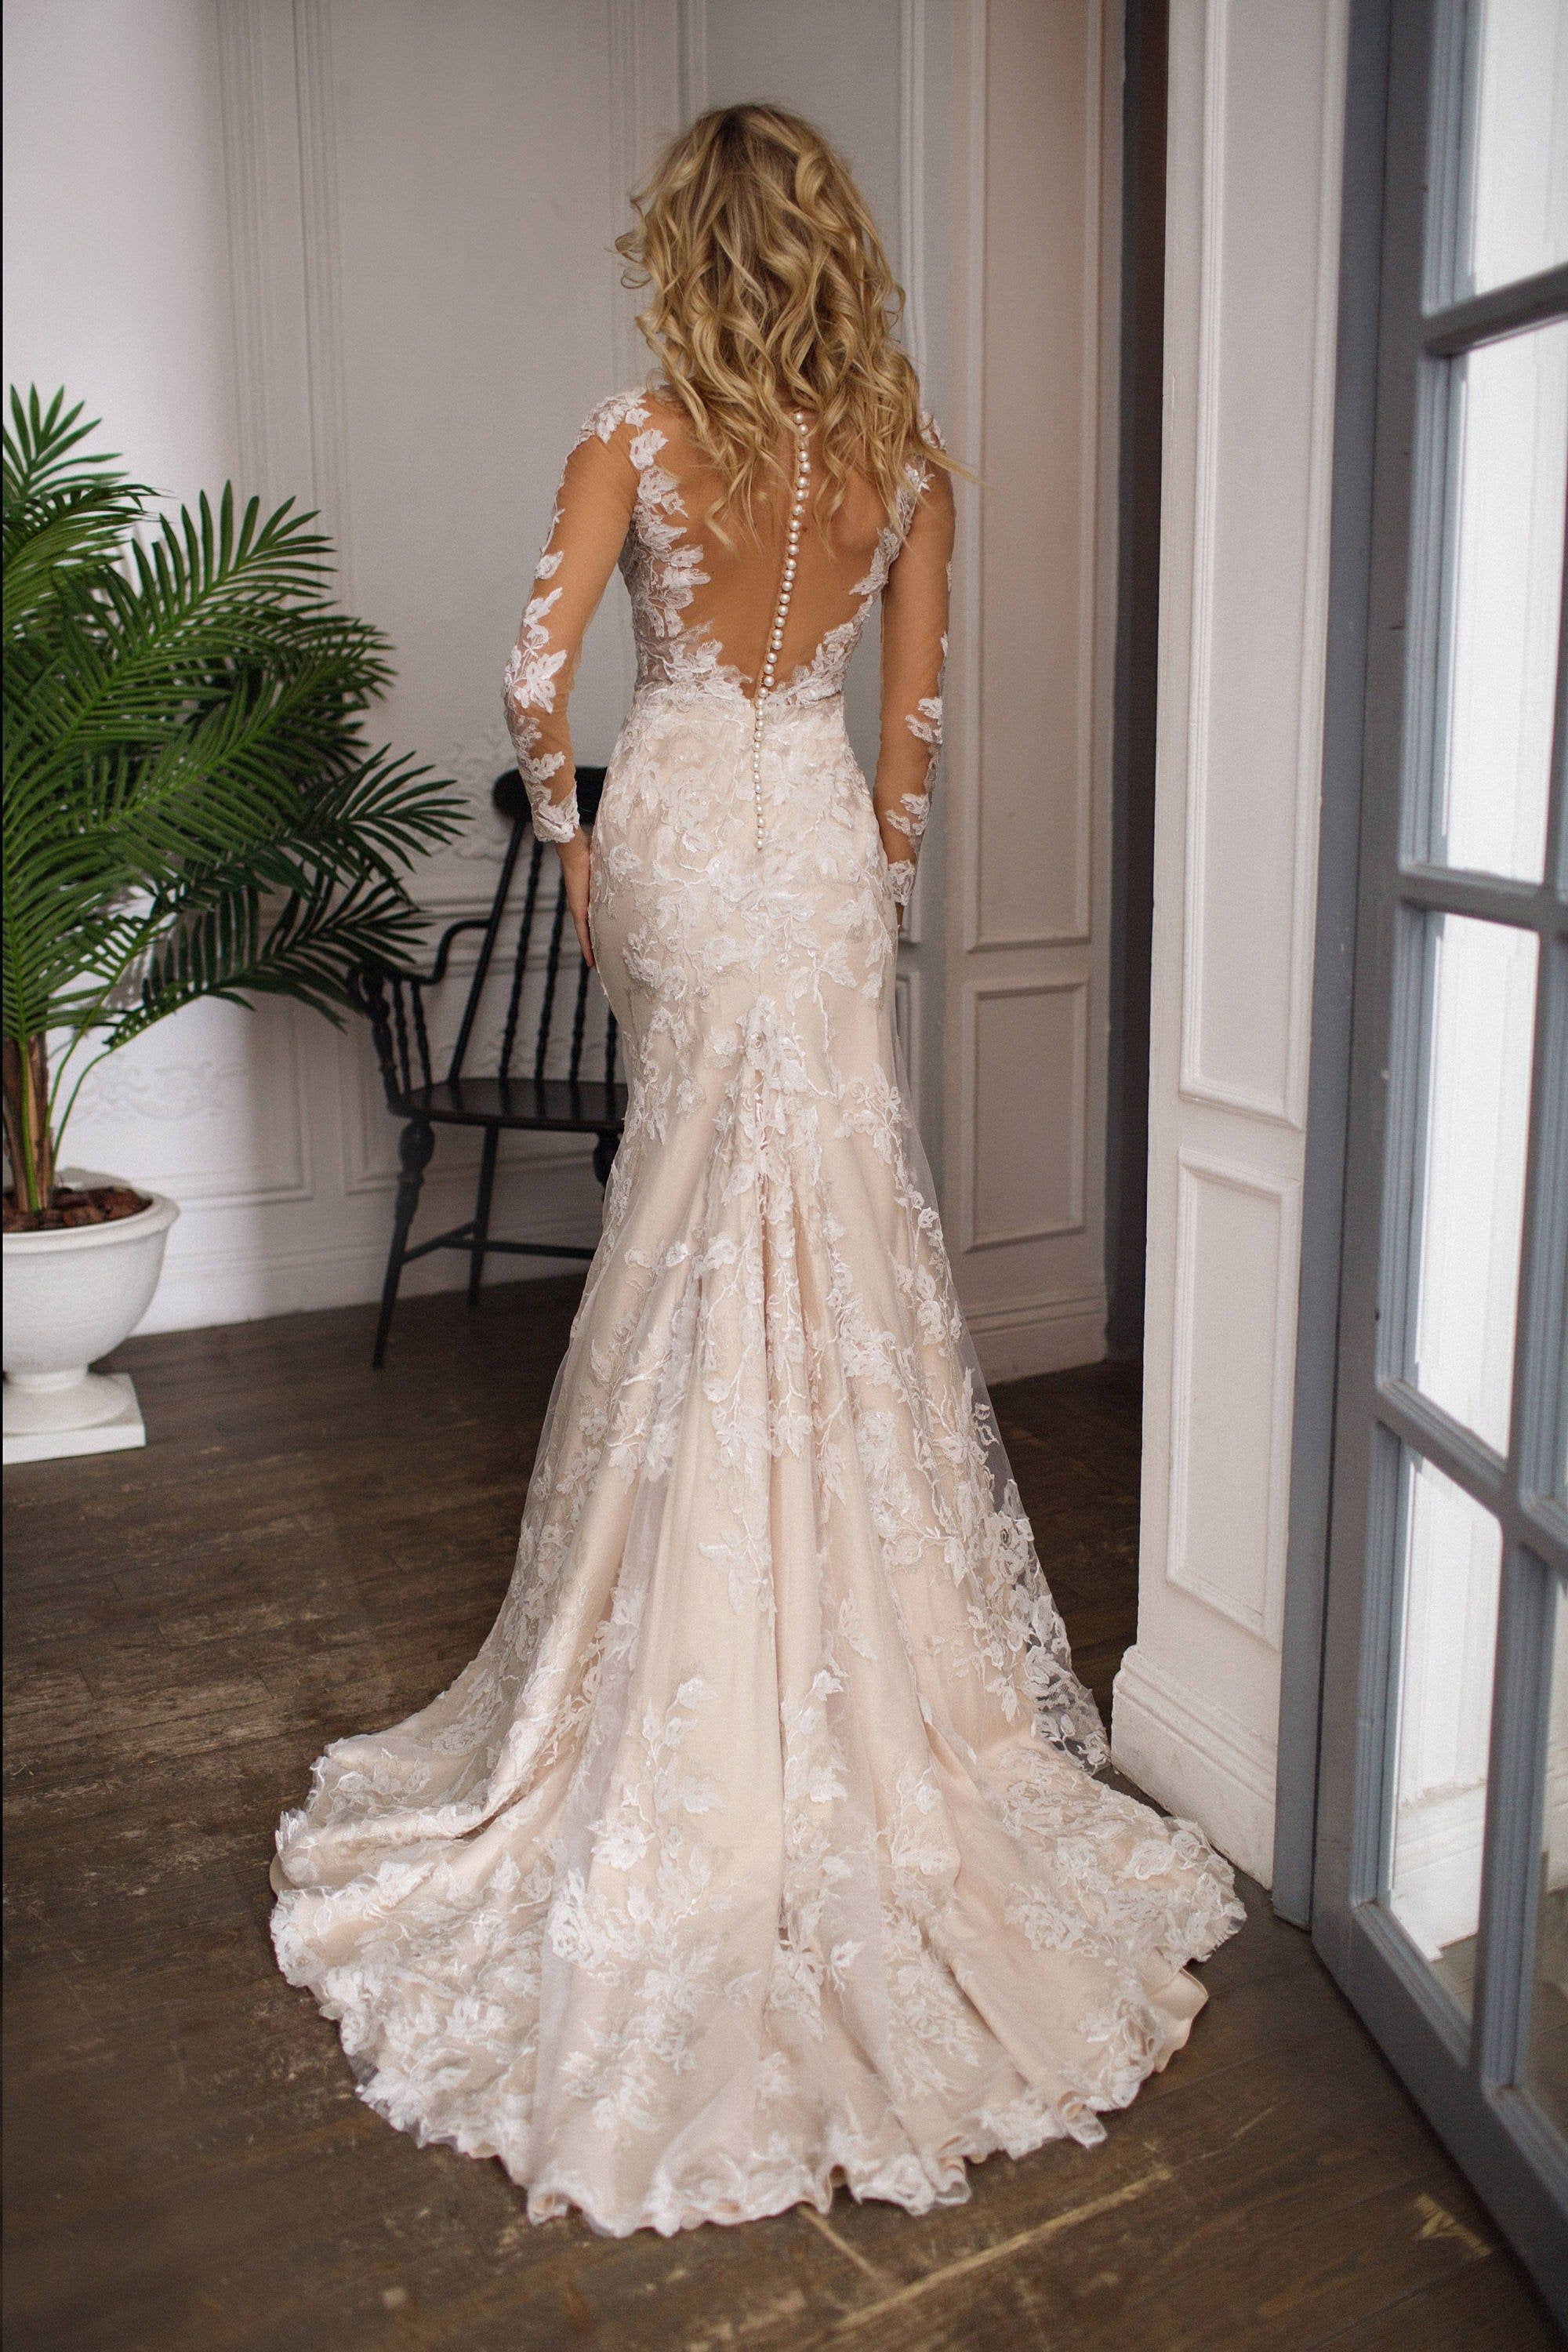 long sleeve wedding dress  Drafne, low back wedding dress, illusion lace long sleeves